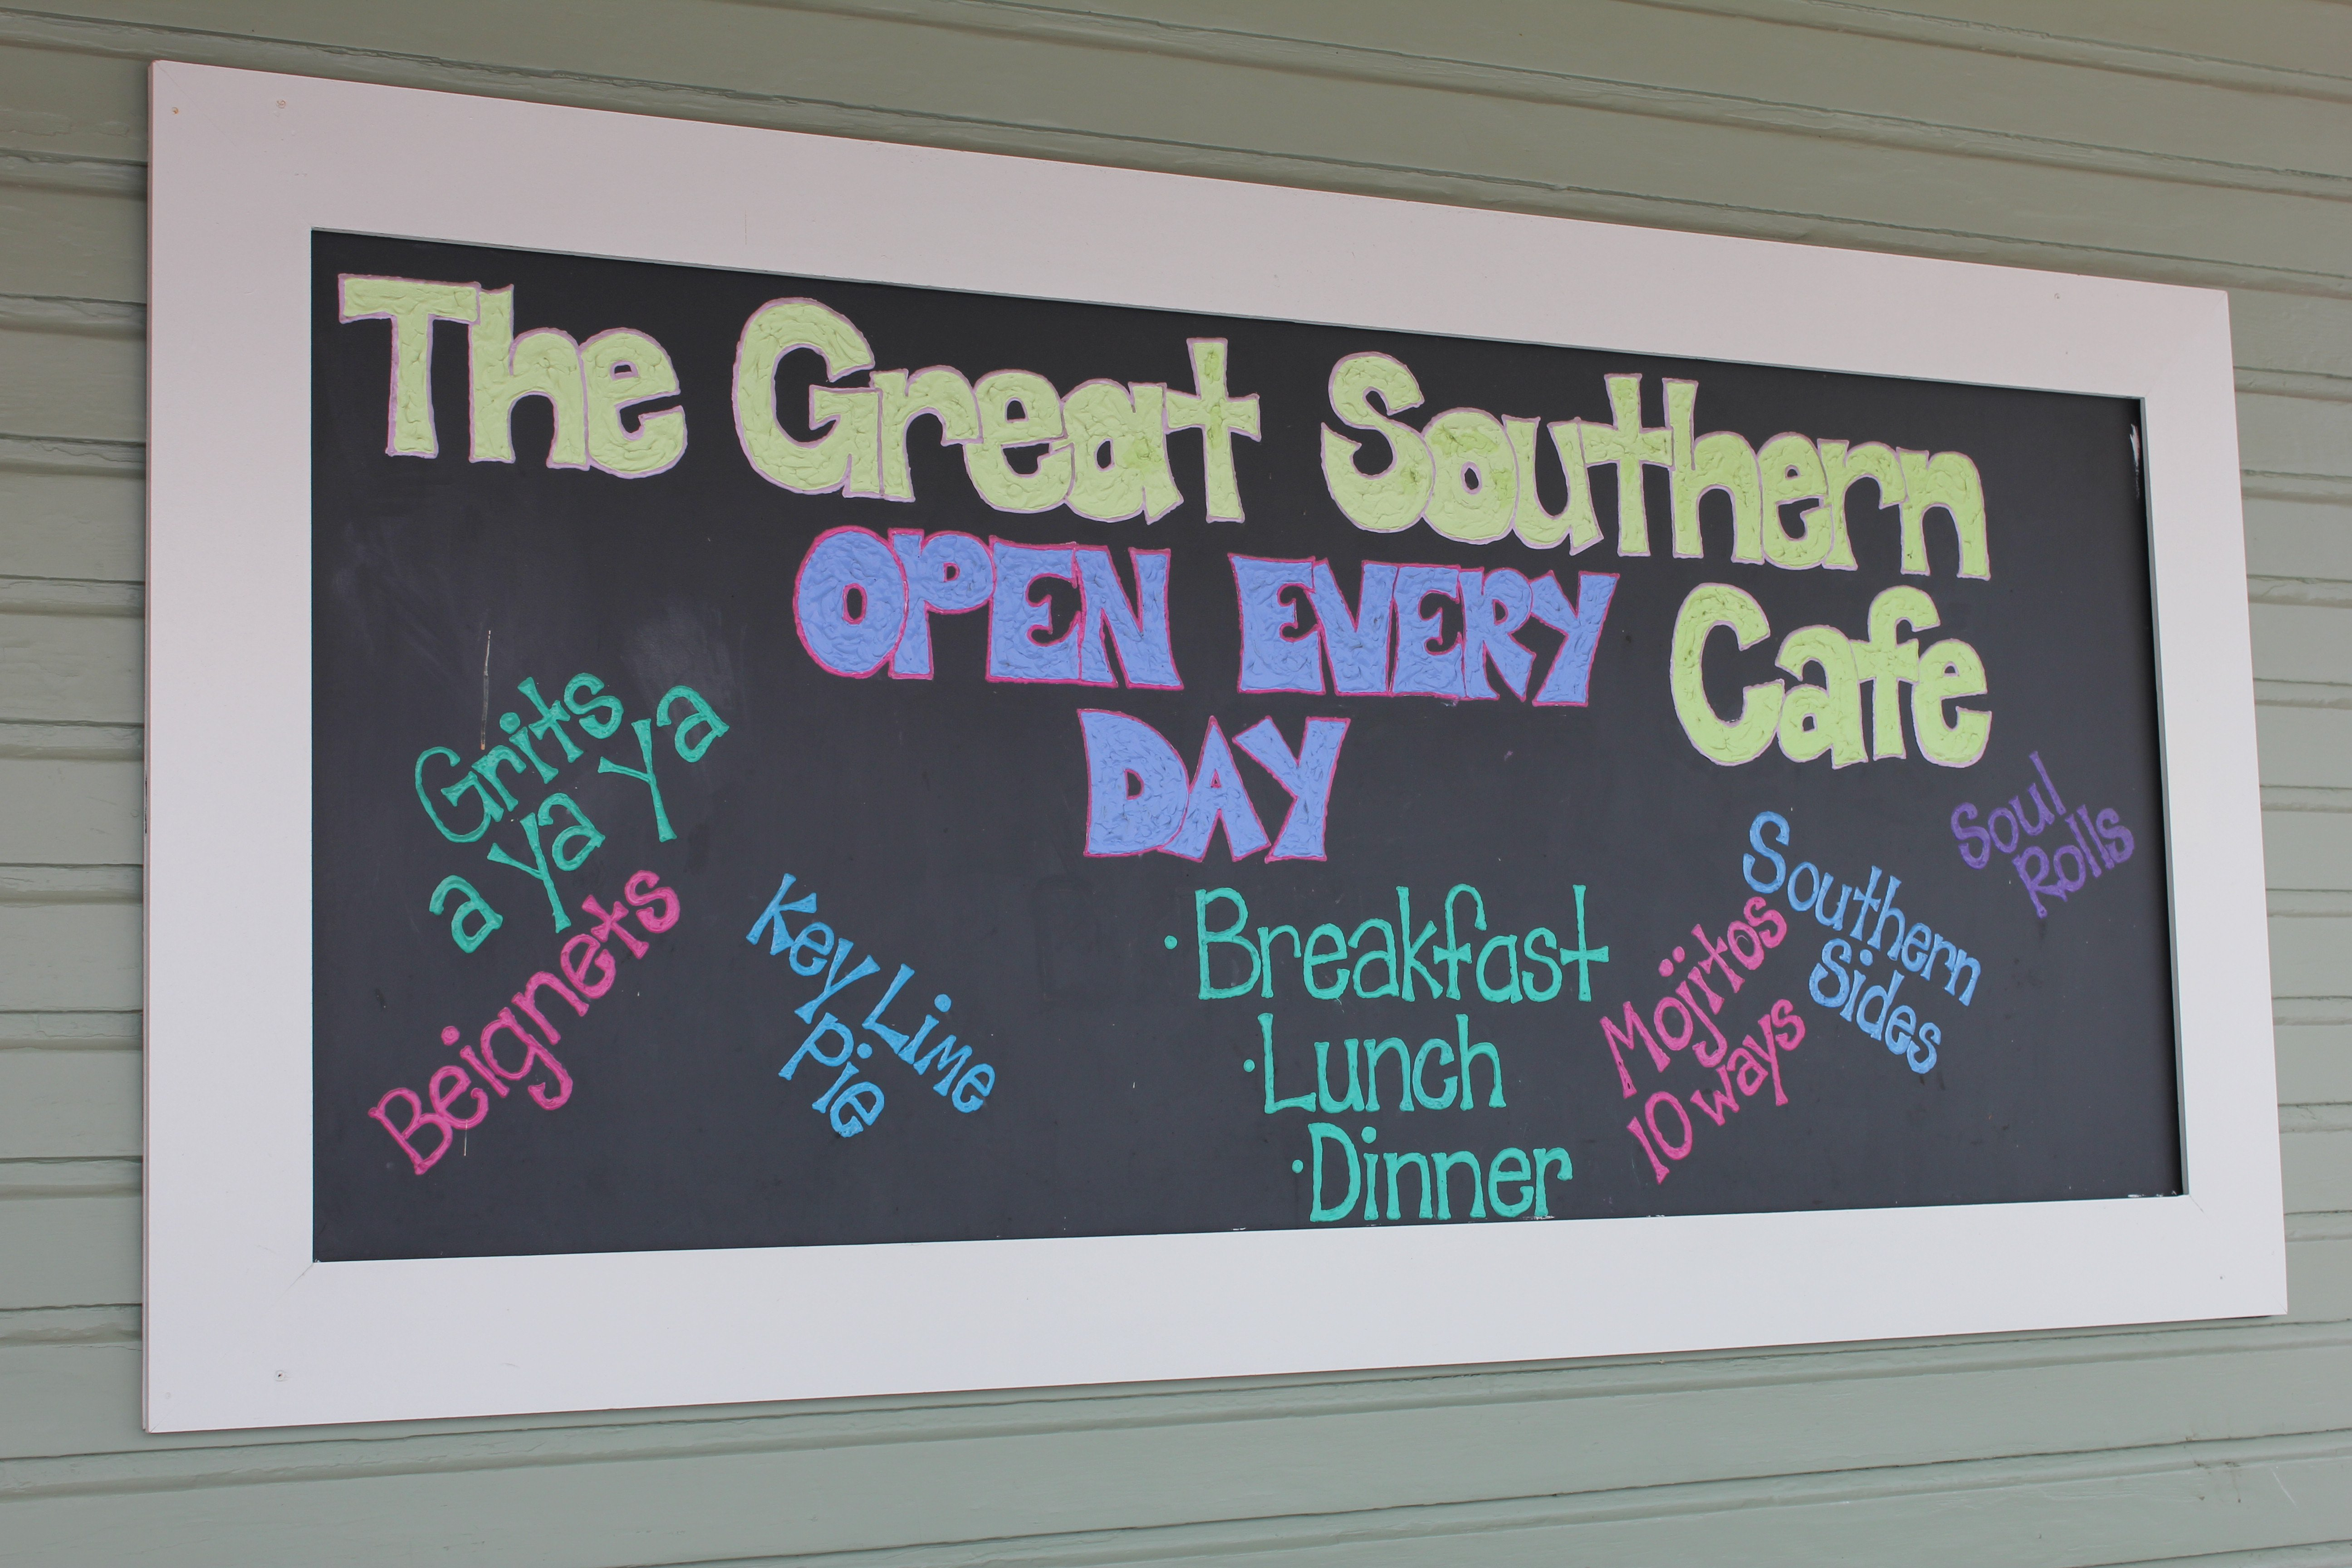 Seaside The Great Southern Cafe 1 30a food and wine